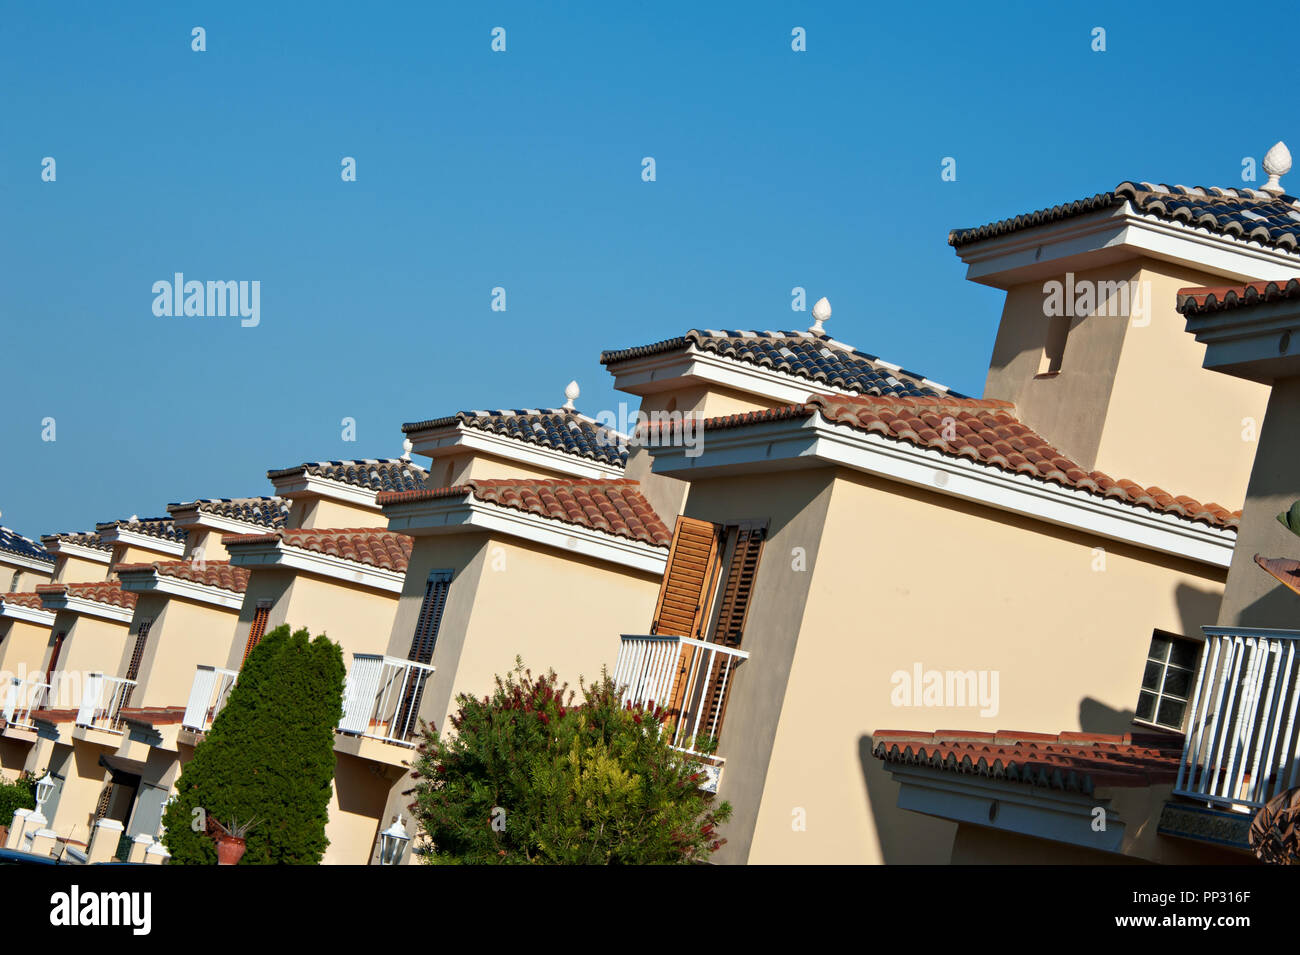 A row of properties on a Spanish urbanisation - Stock Image